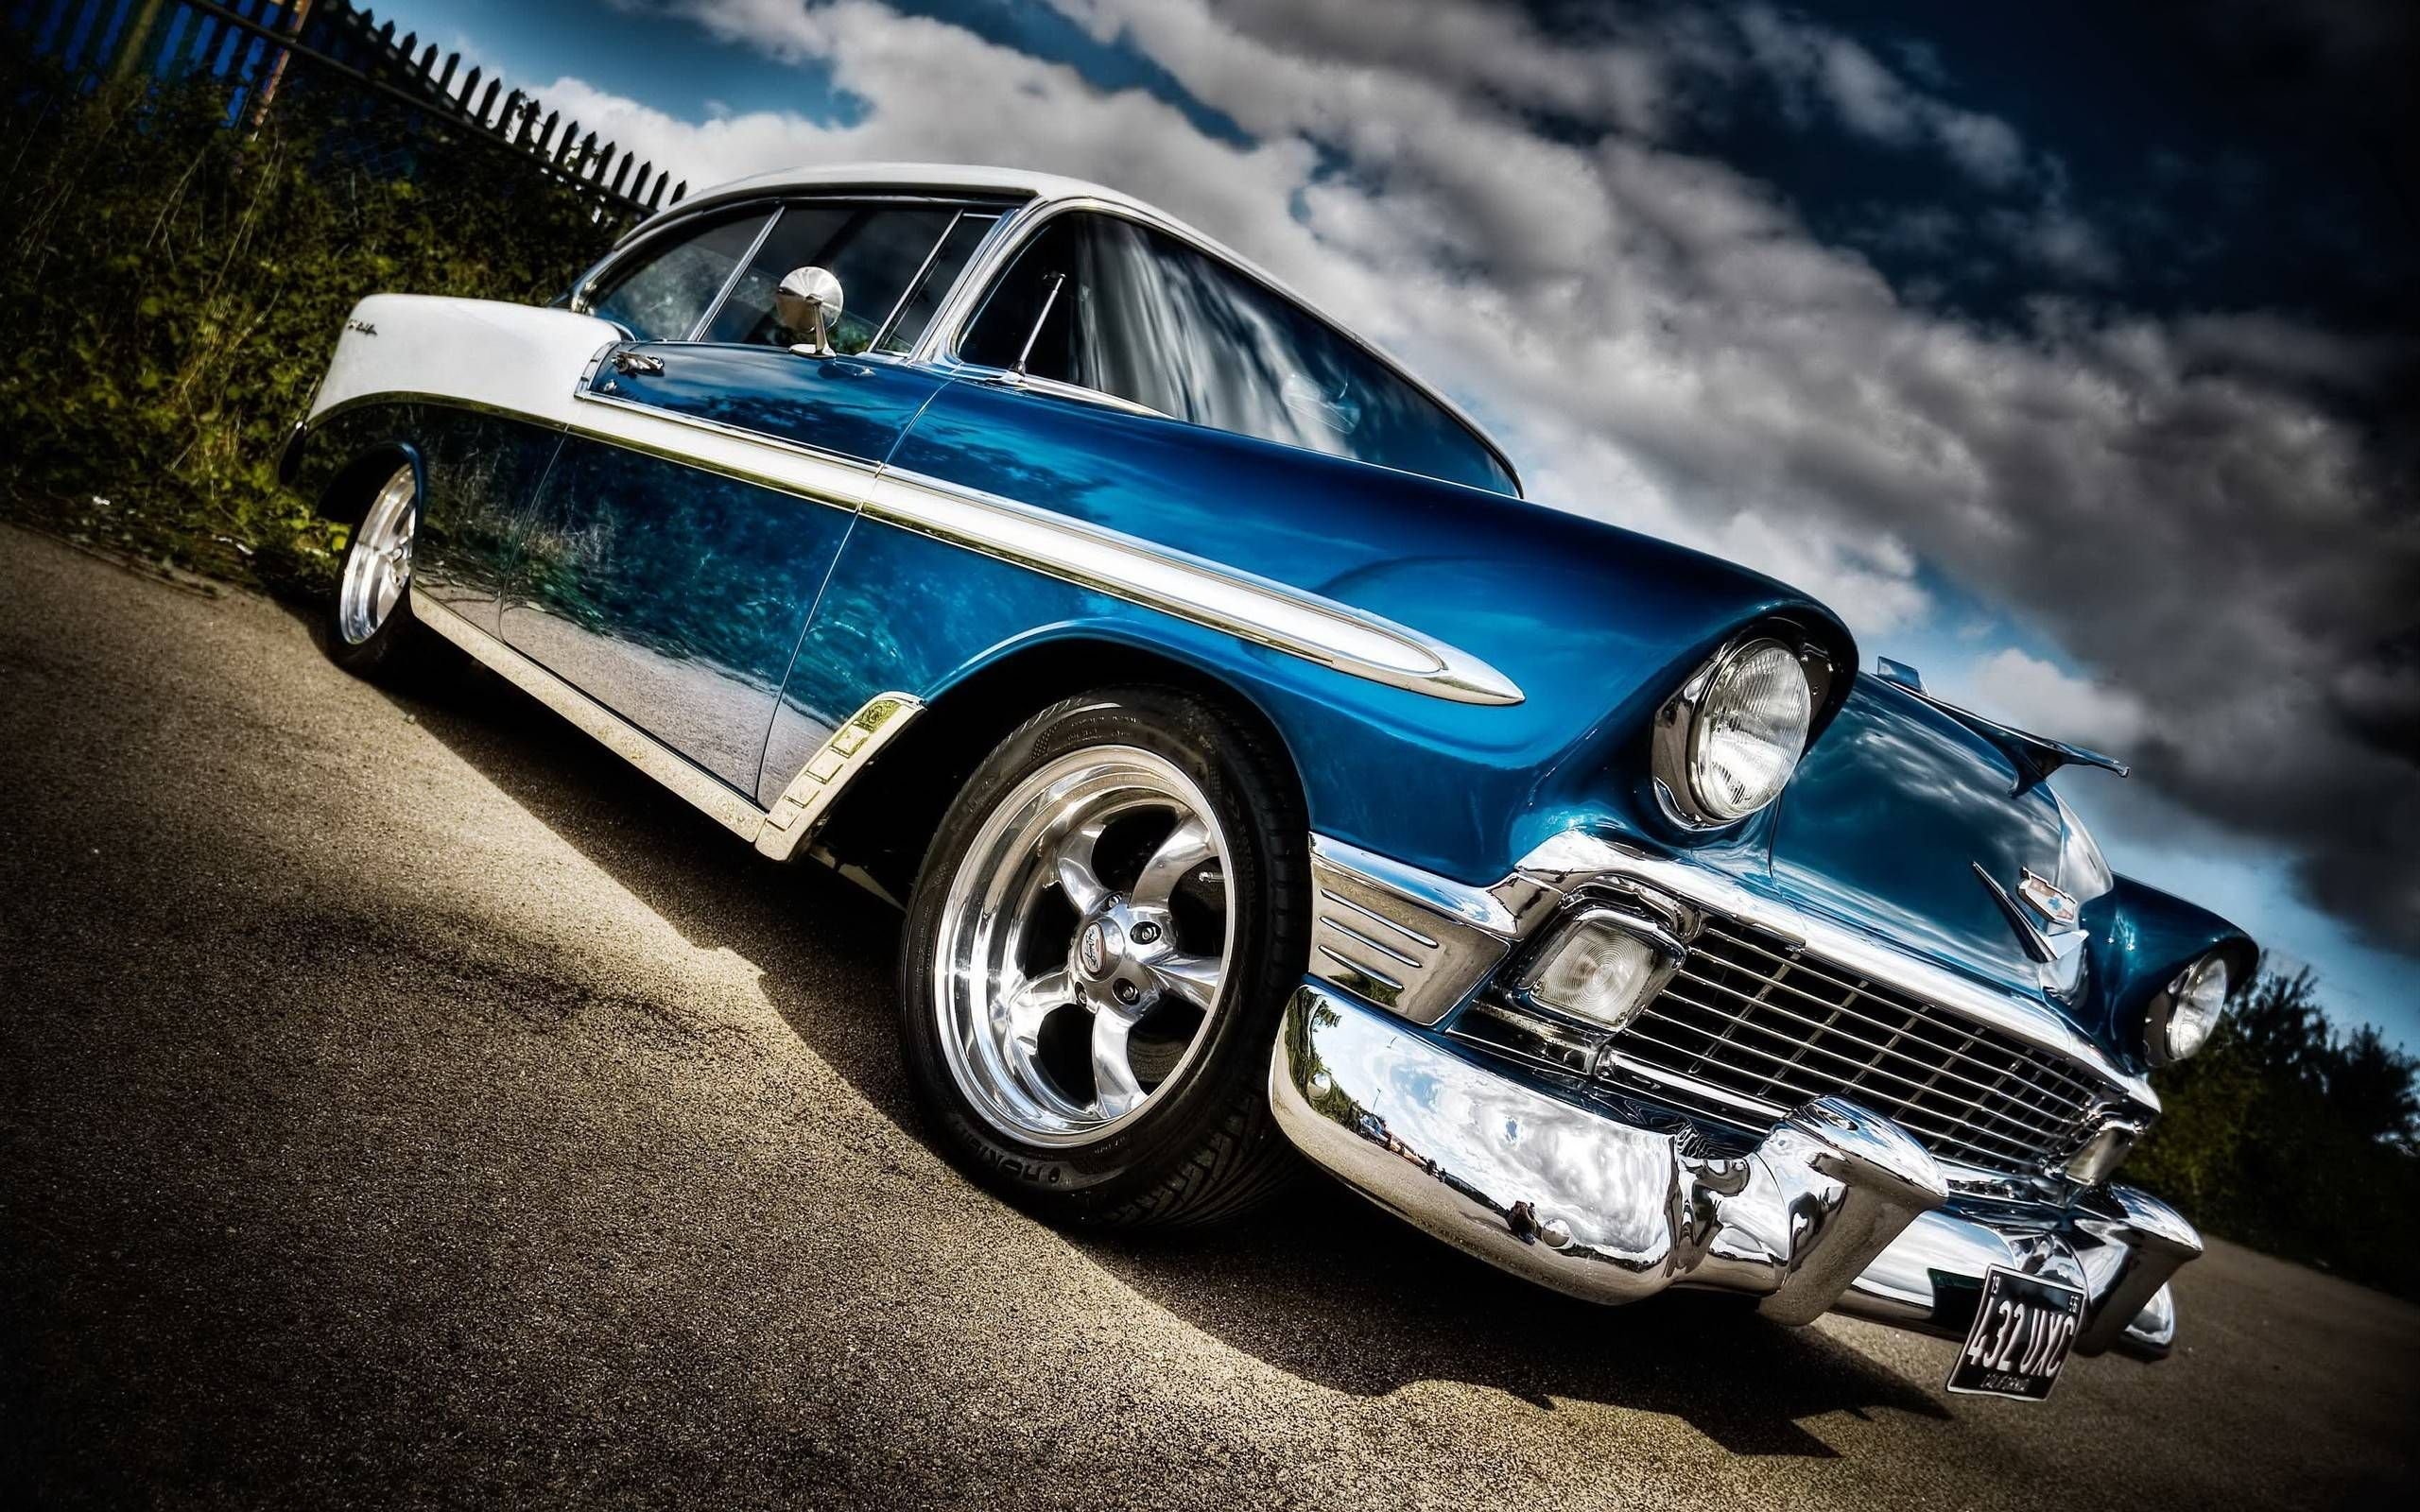 Classic Car Wallpaper For Android For Desktop Wallpaper 2560 x 1600 px 1.2 MB co…